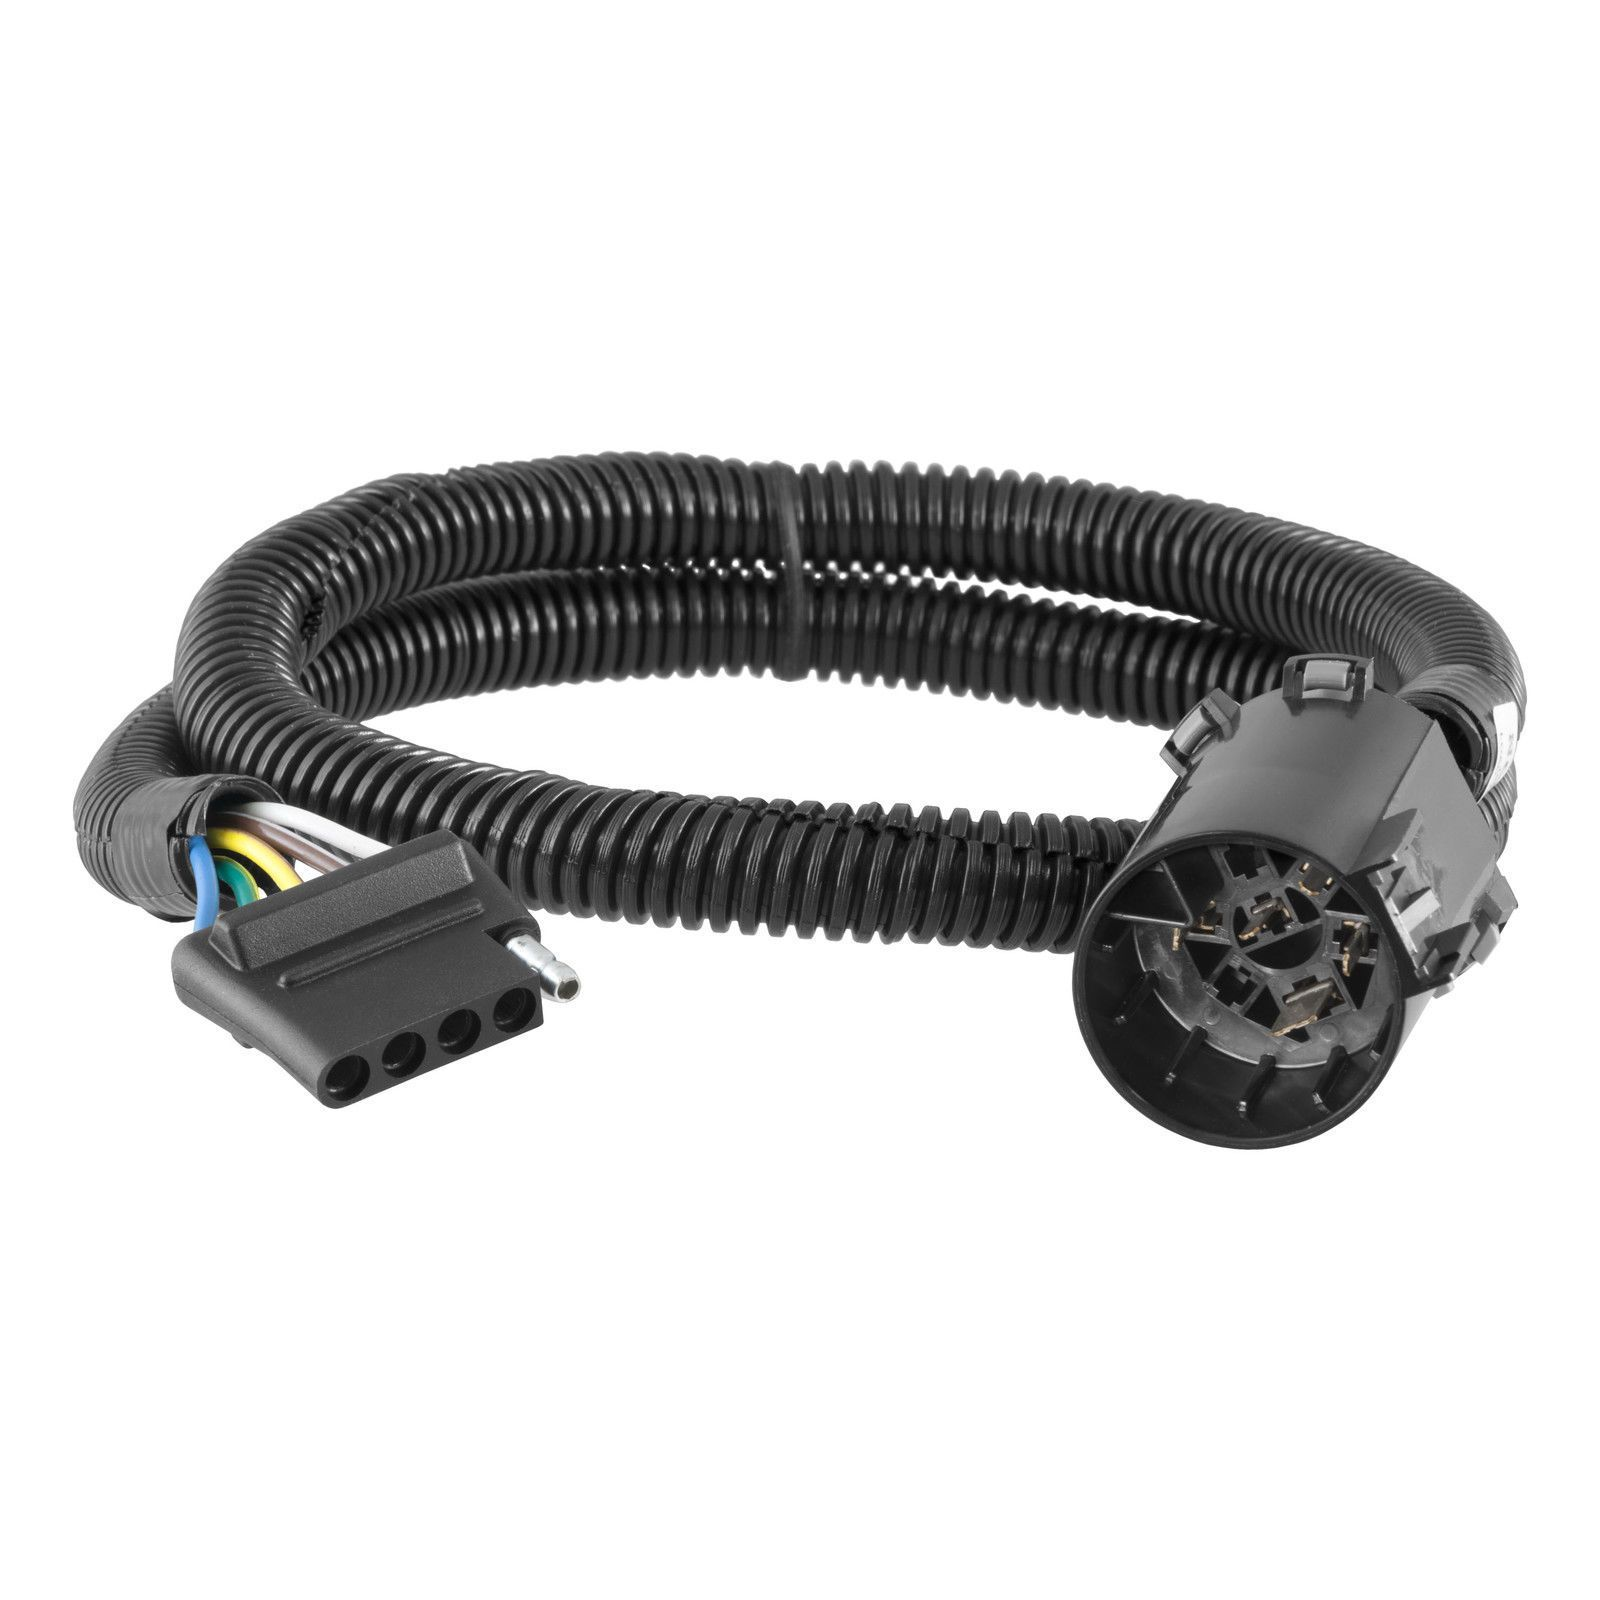 curt wiring 56515 vehicle-to-trailer connector for ford, chevy, gmc, buick,  jeep